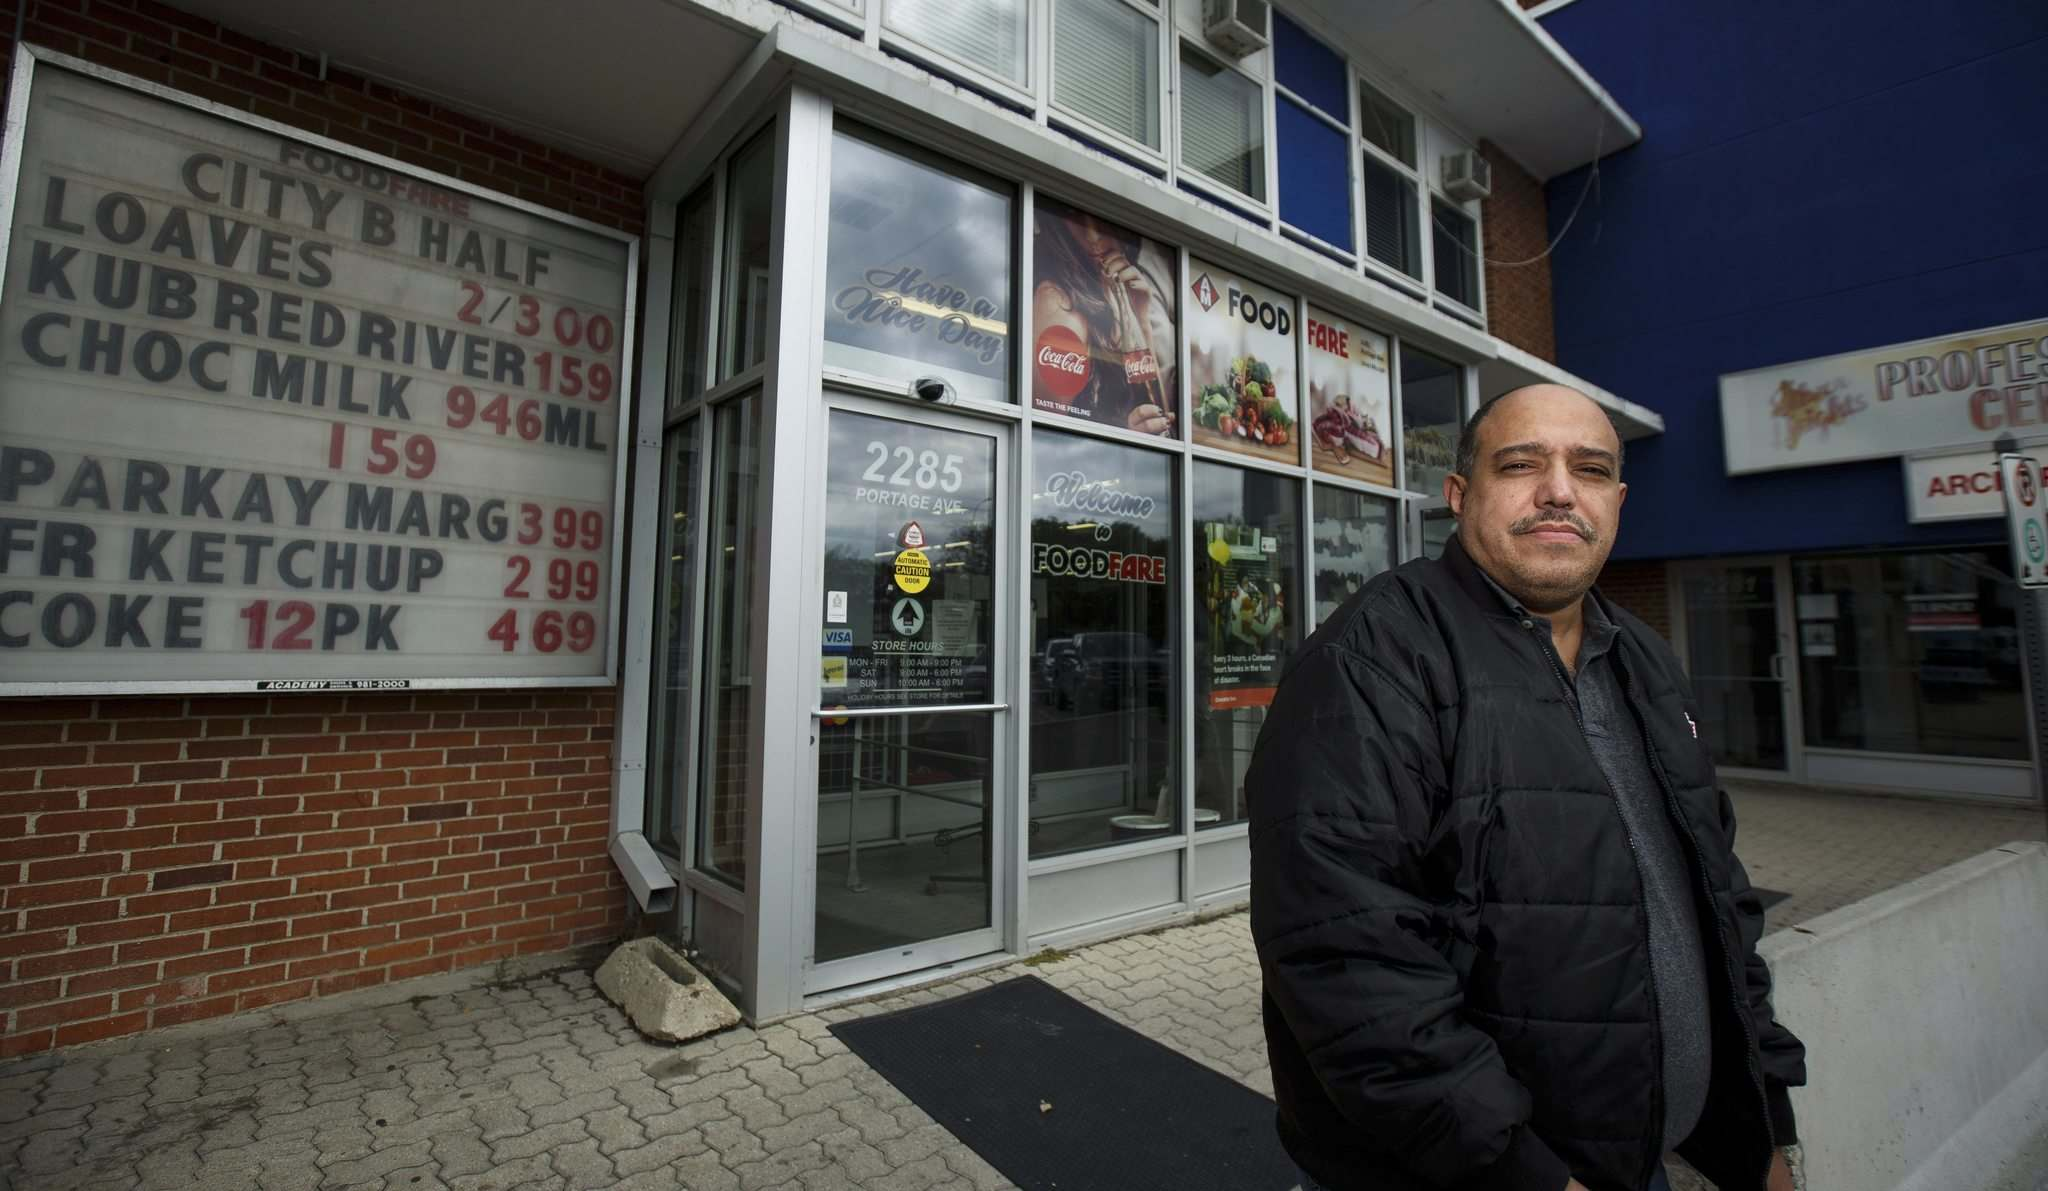 'Brazenness of the shoplifting has gone up': Retailers grapple with age-old problem